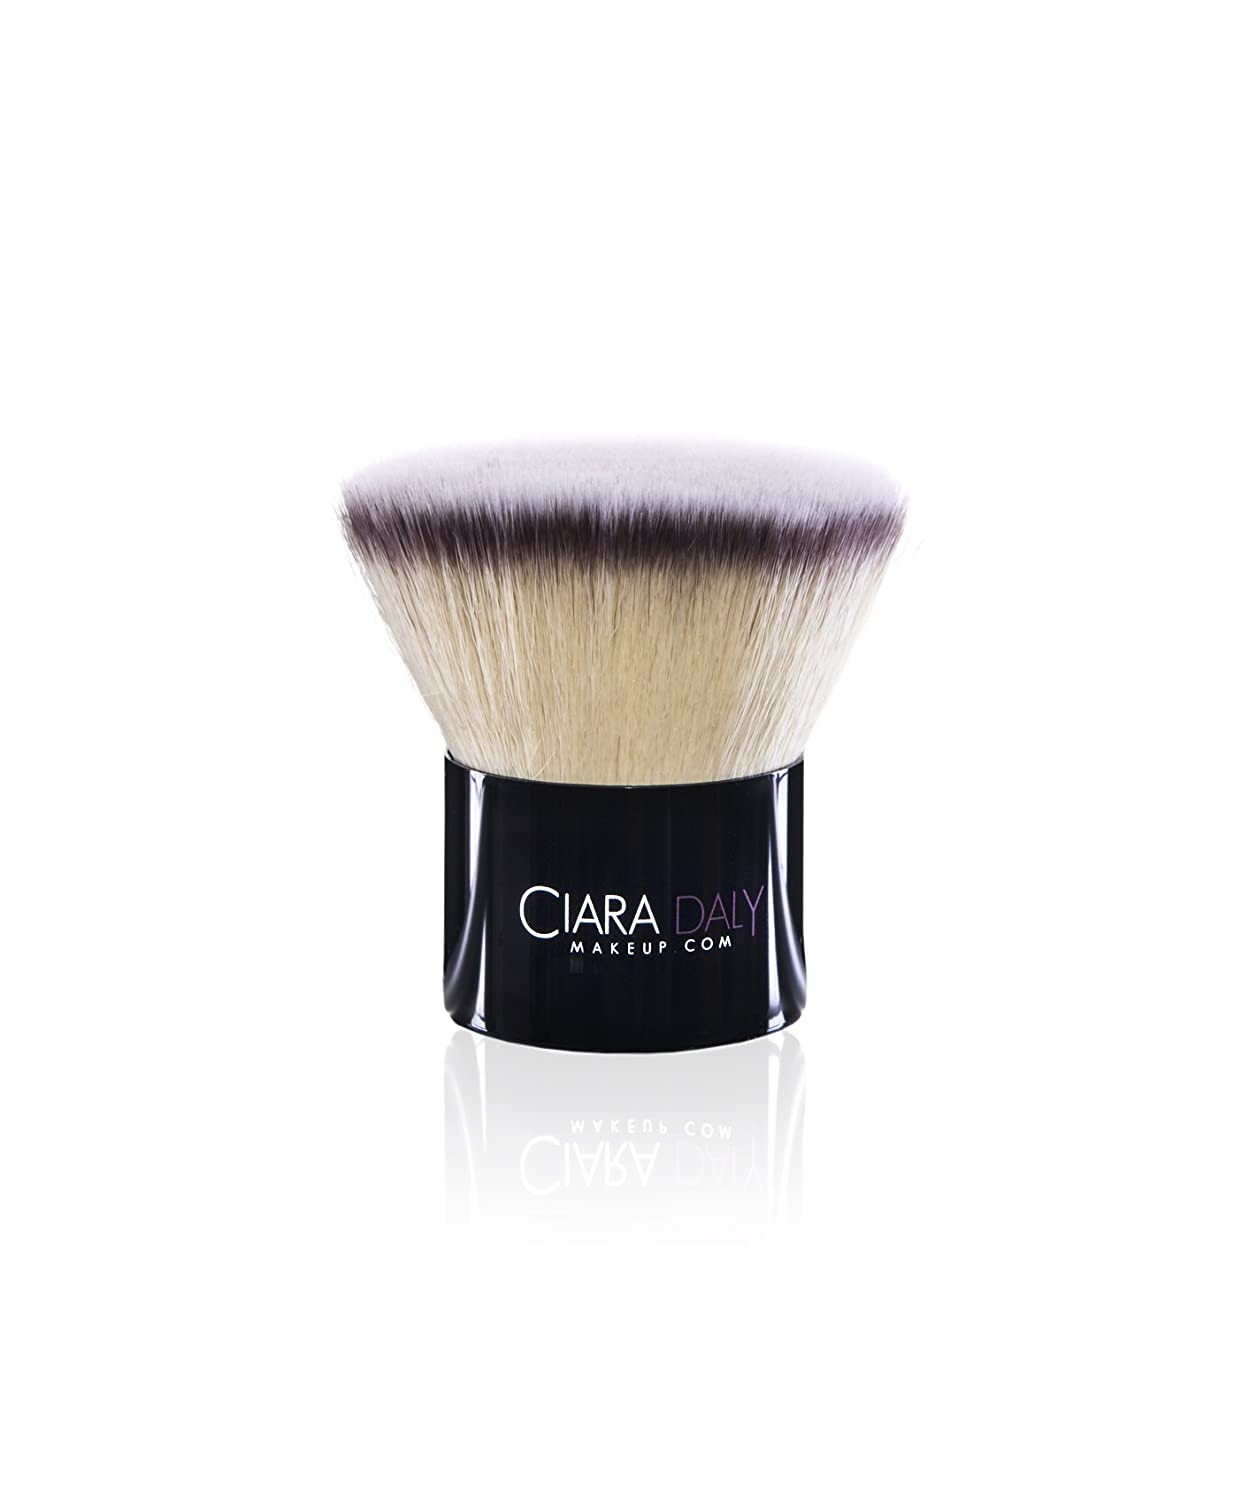 Ciara Daly Makeup 'My Hero' Professional Foundation Face Make up Brush